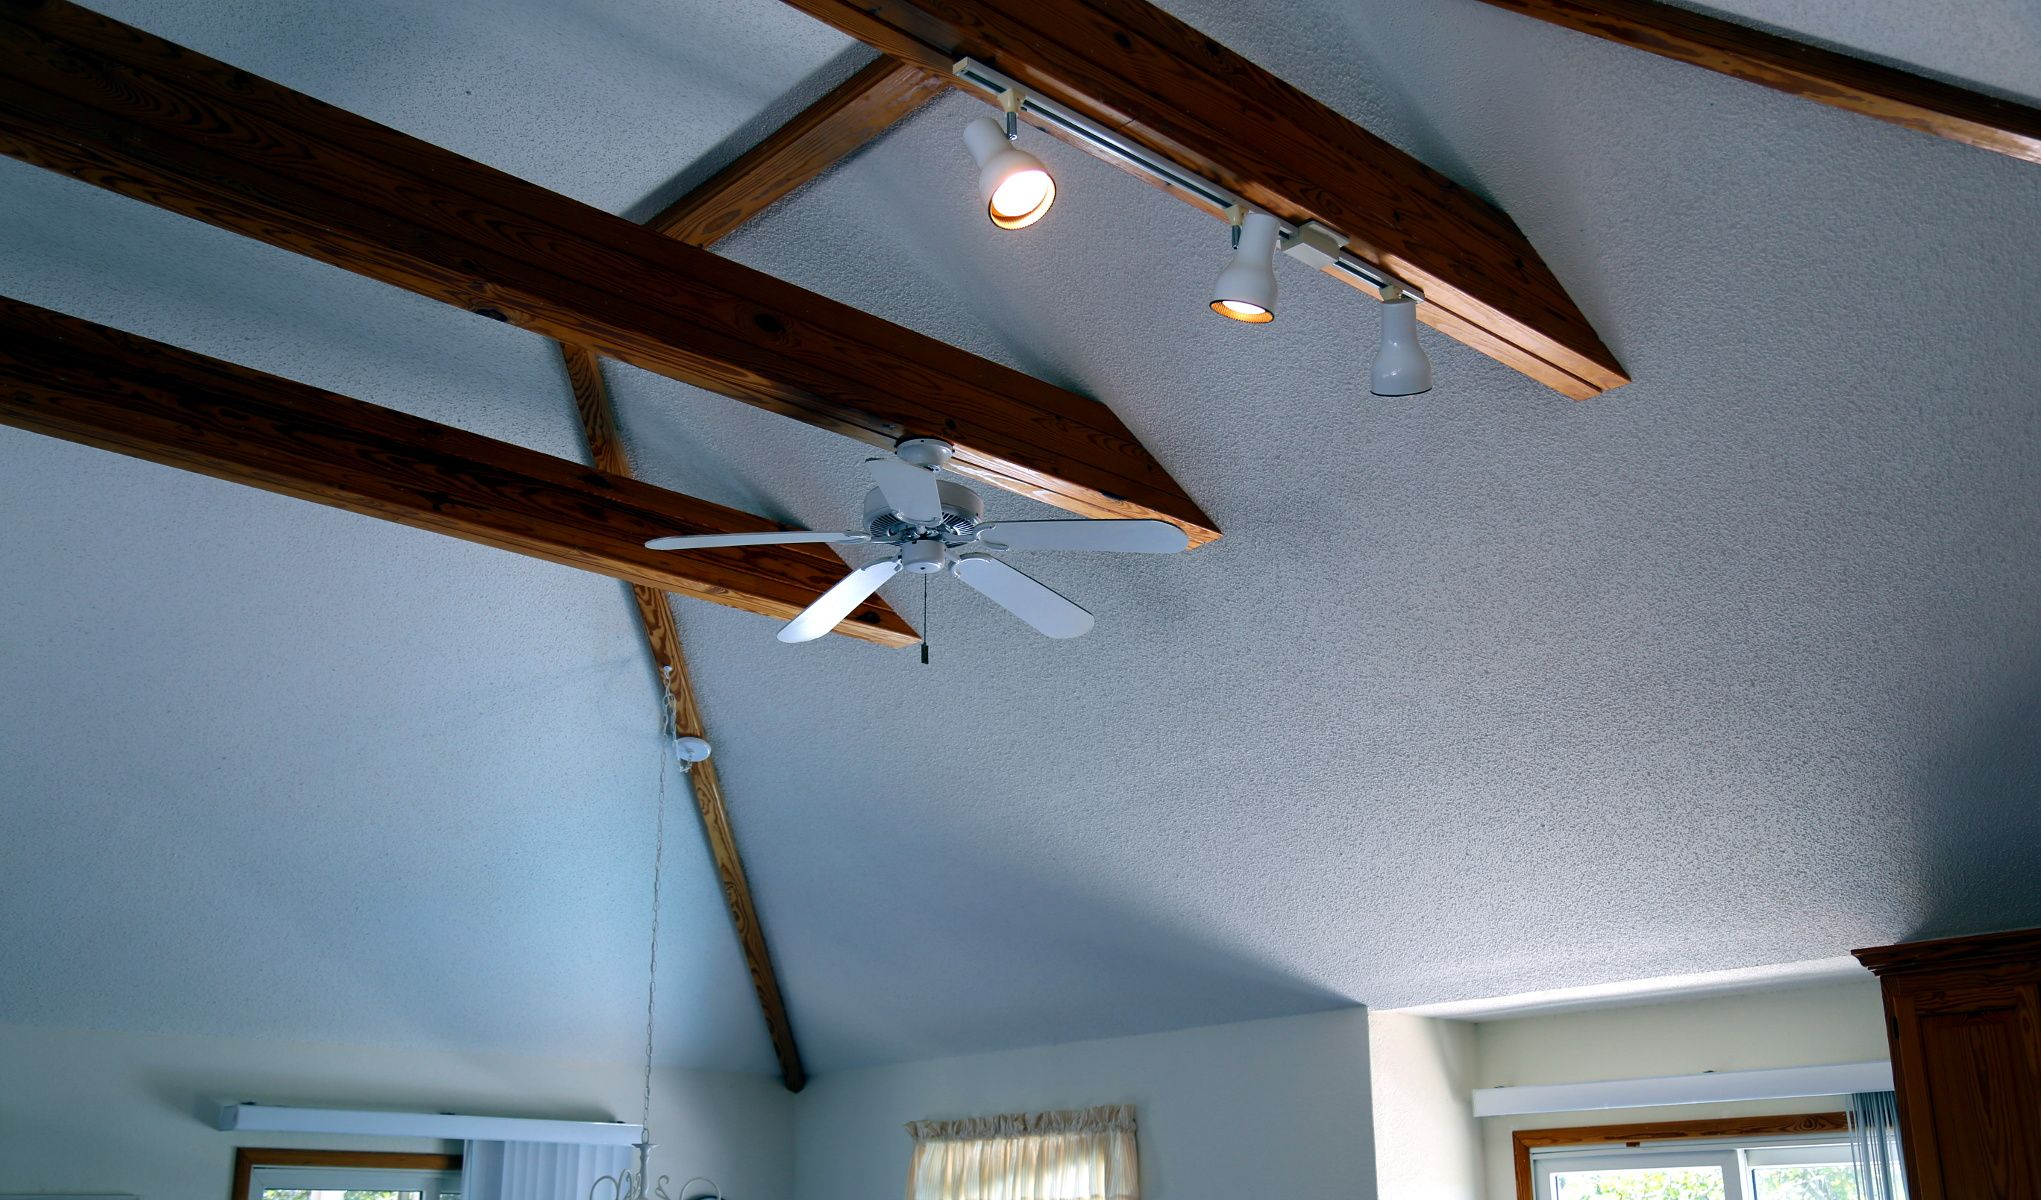 High Ceiling Fans can Save Money light up the room and cool you